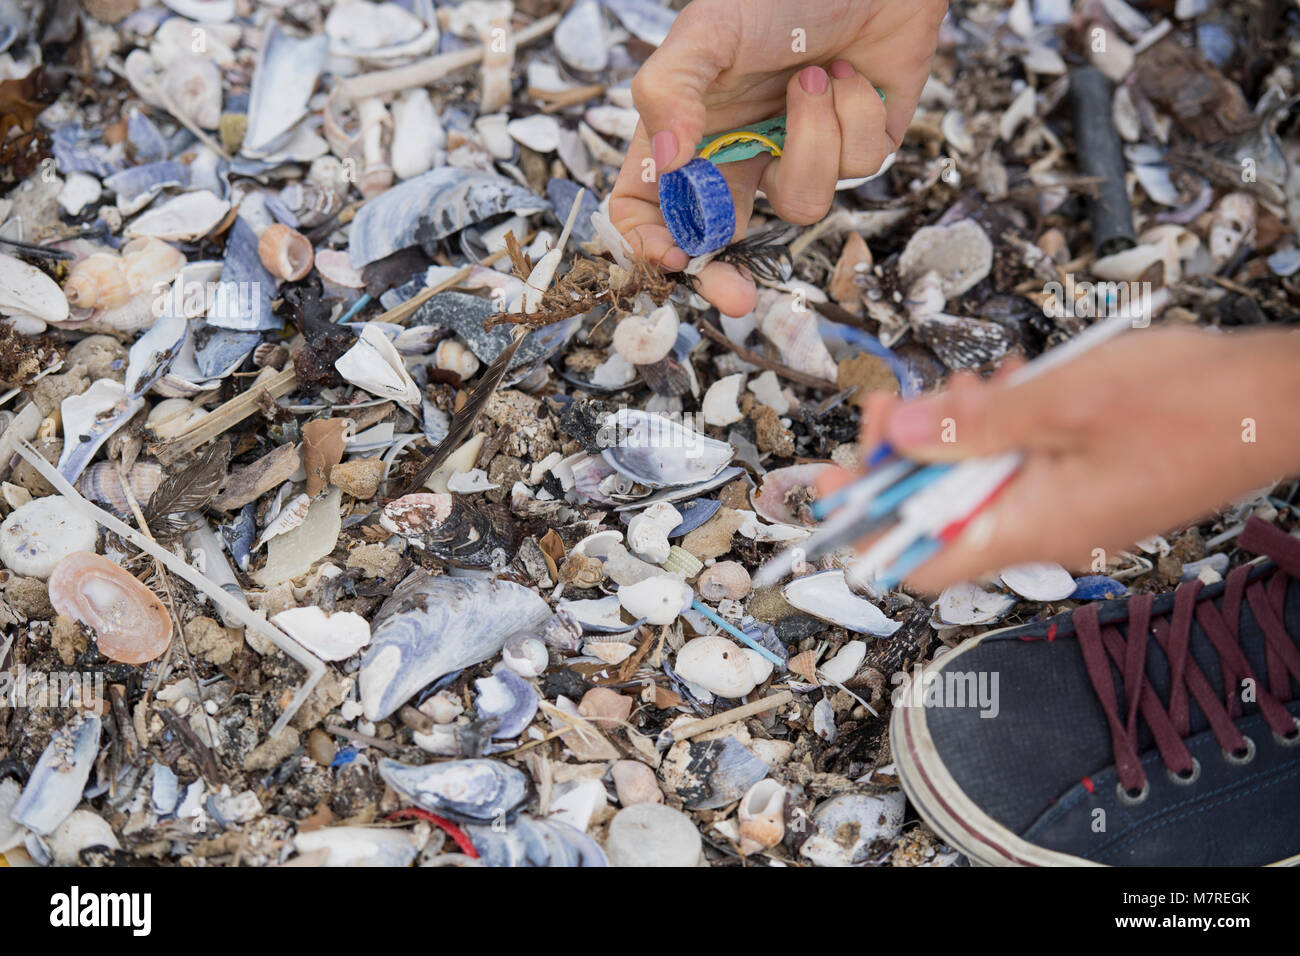 Plastic being collected as part of a beach clean-up in Cape Town, South Africa - Stock Image